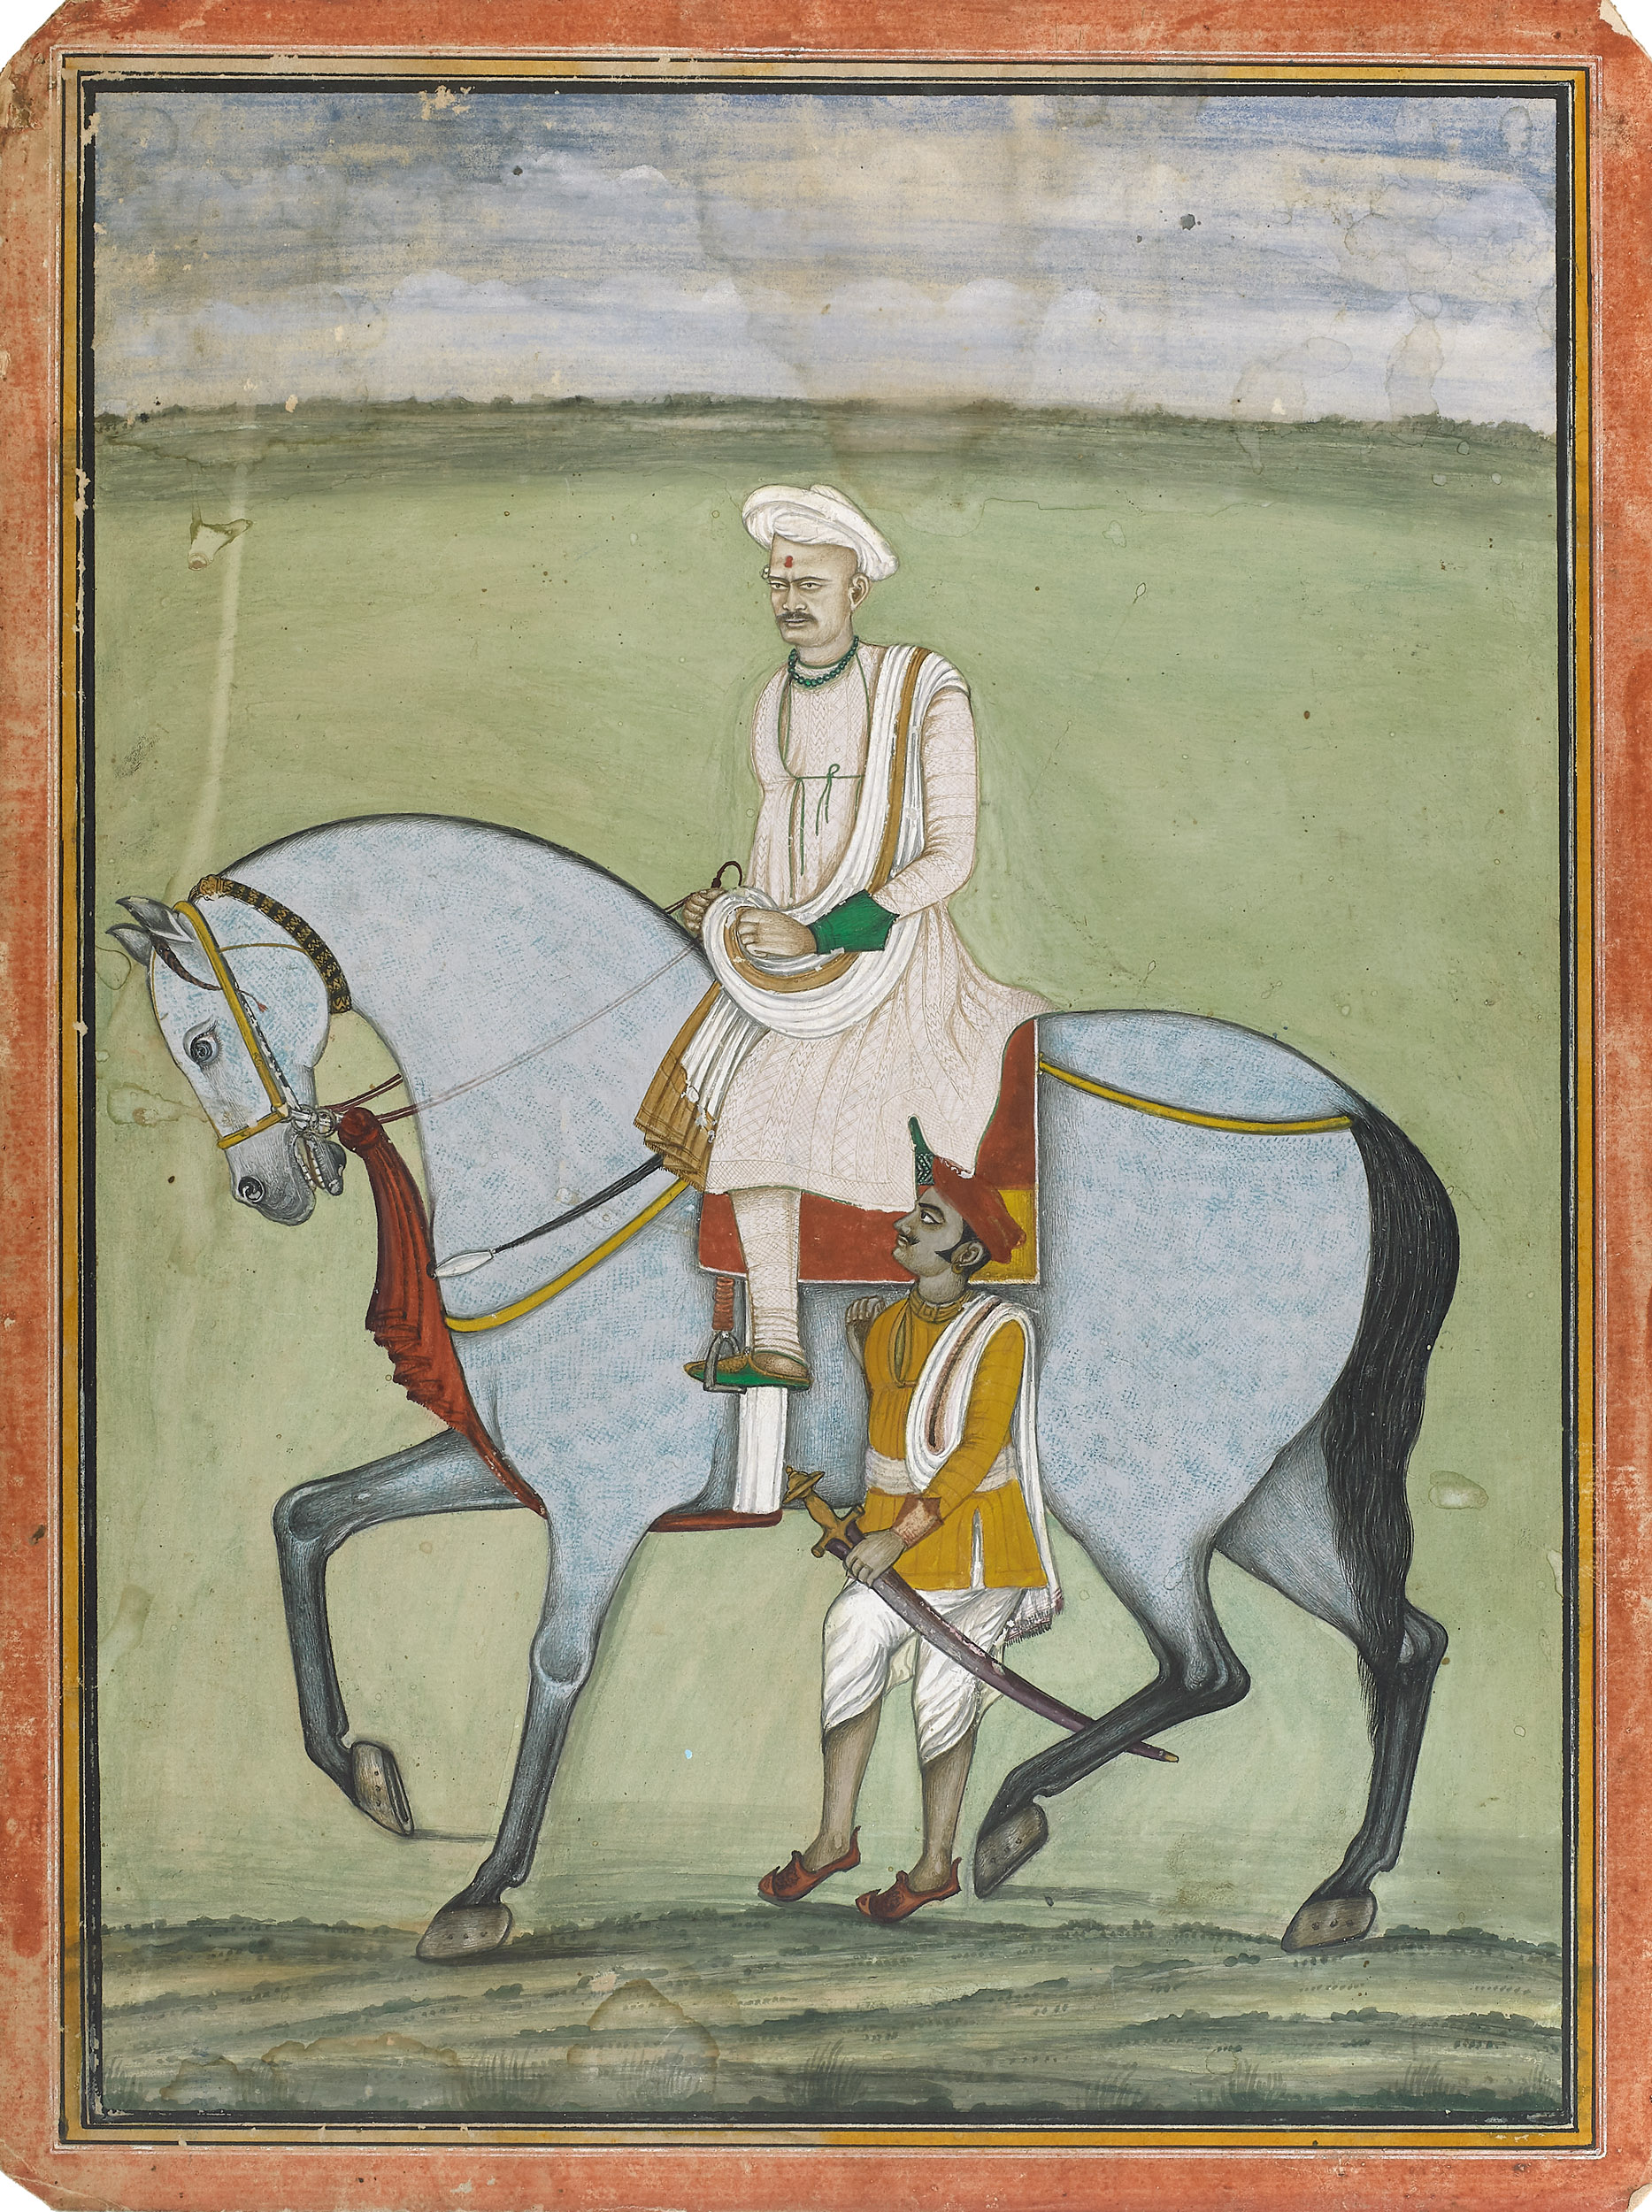 Equestrian Portrait of a Maratha Noble